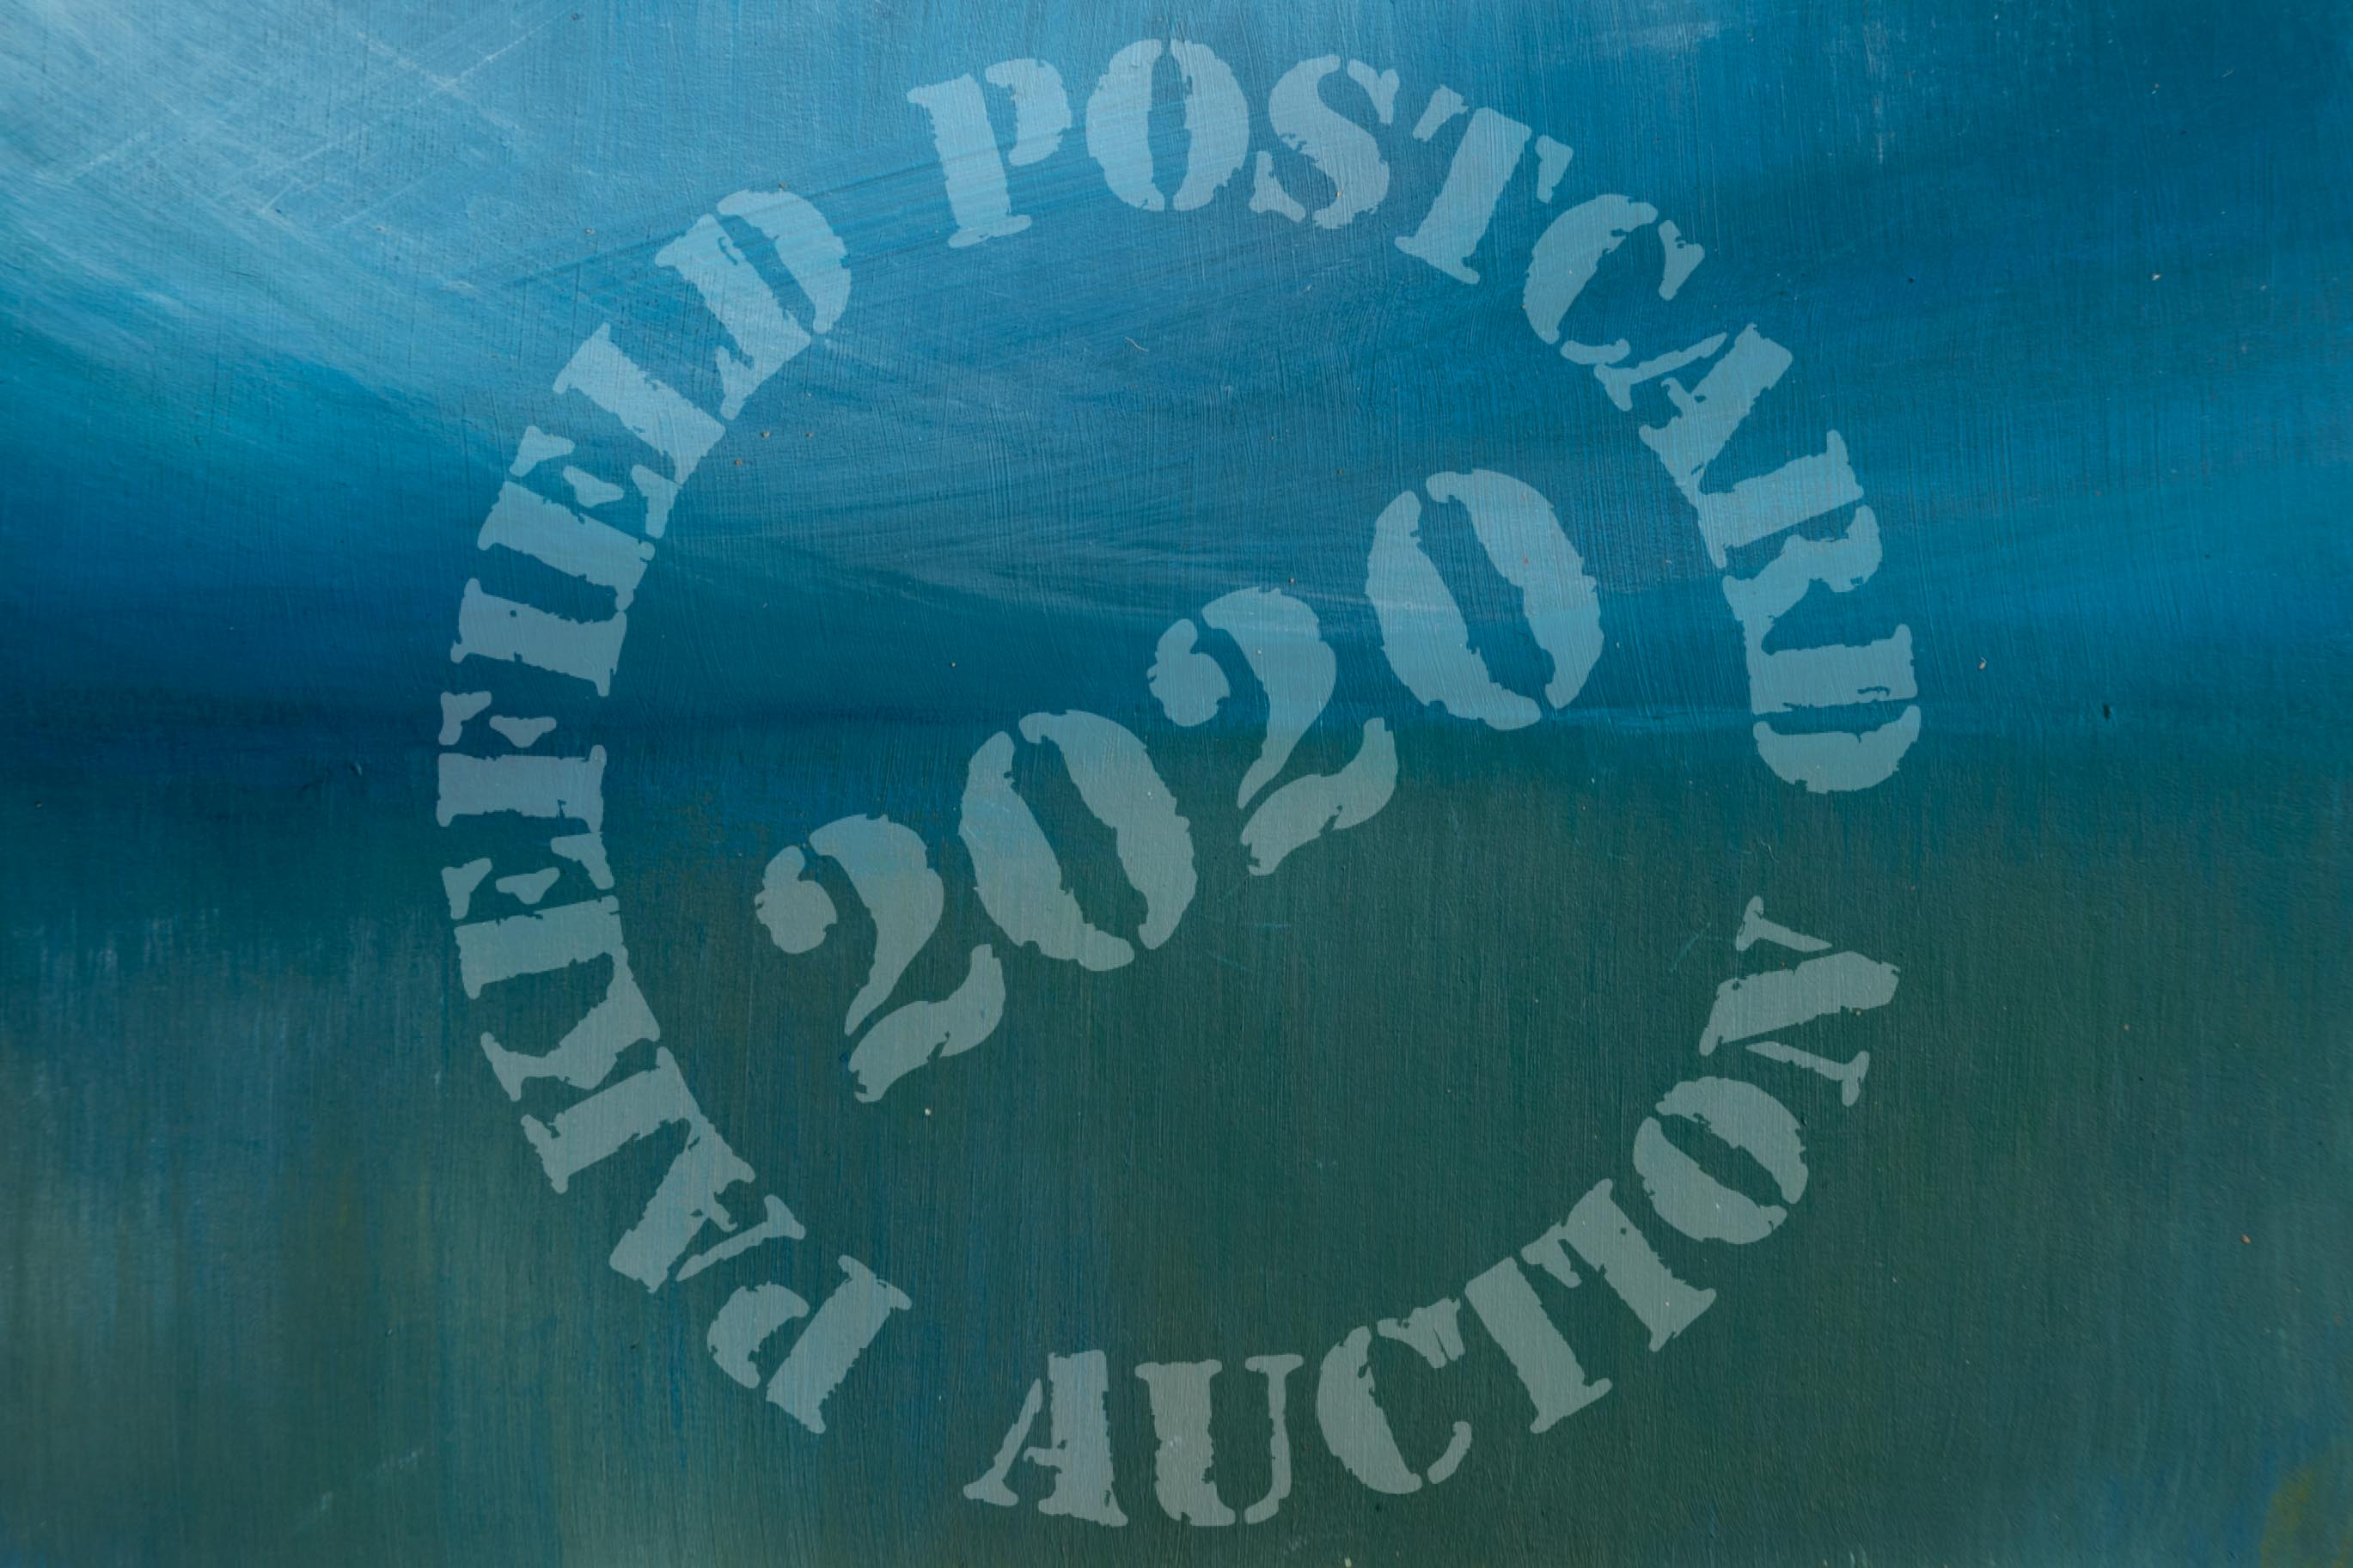 ppa_2020_official numbering_(wm)-55